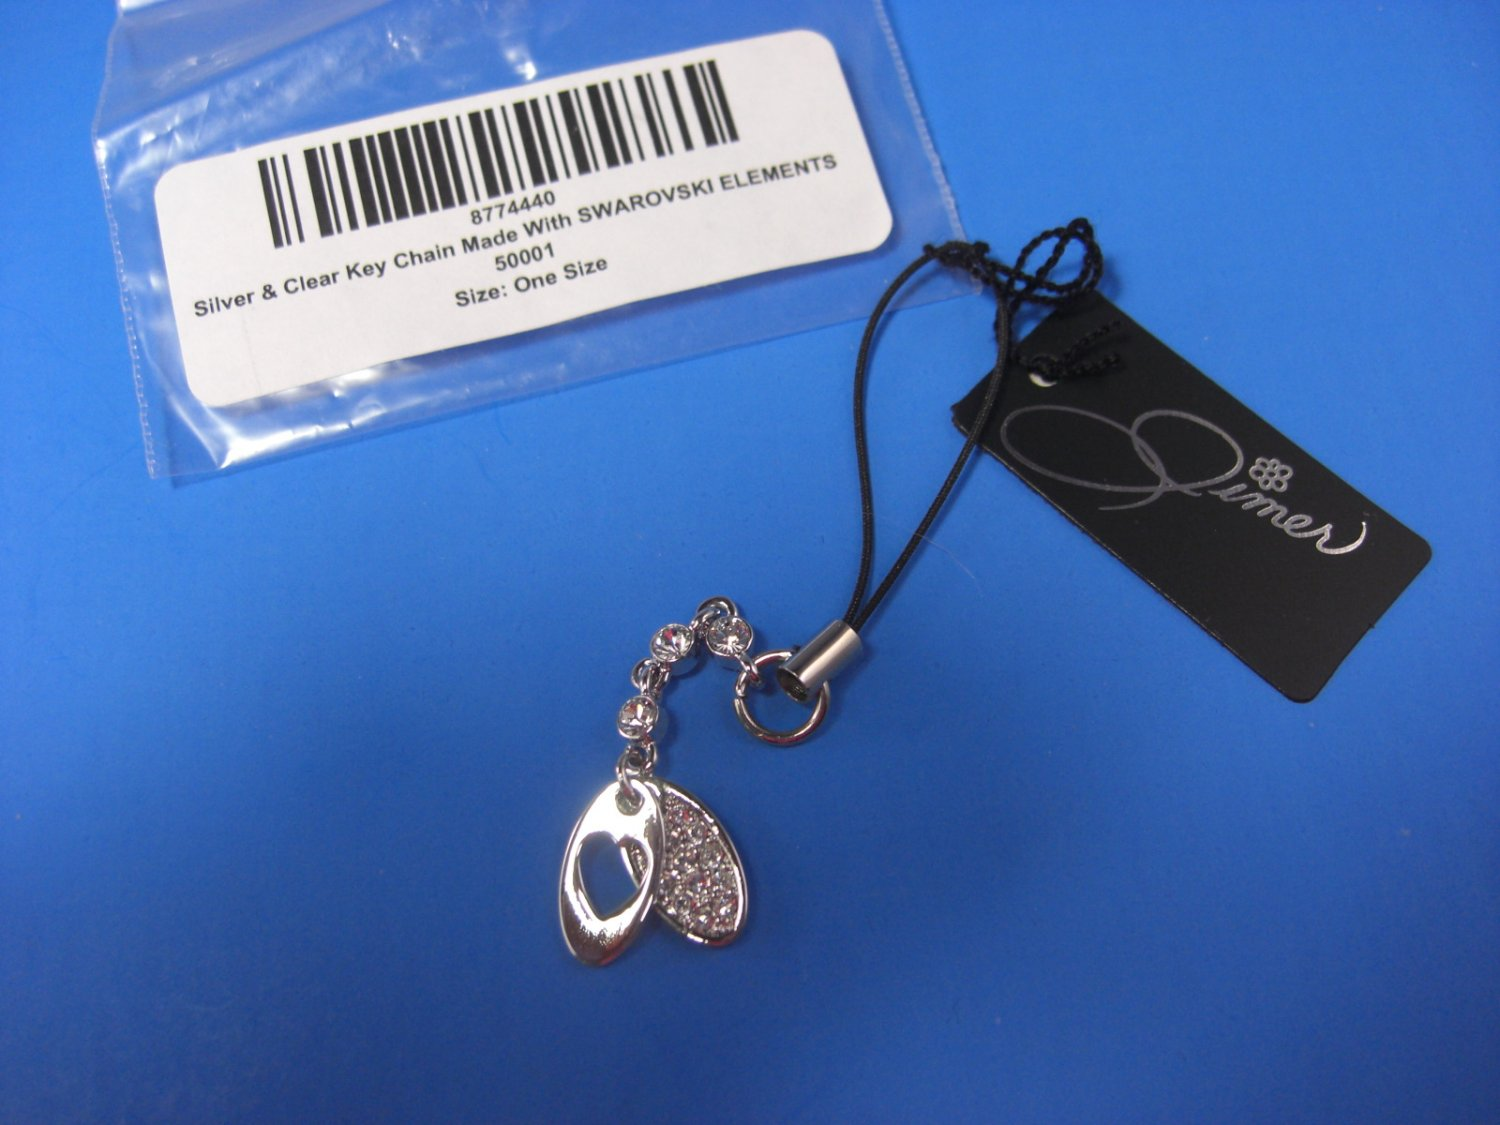 JIMER Silver & Clear Key Chain Made With SWAROVSKI ELEMENTS